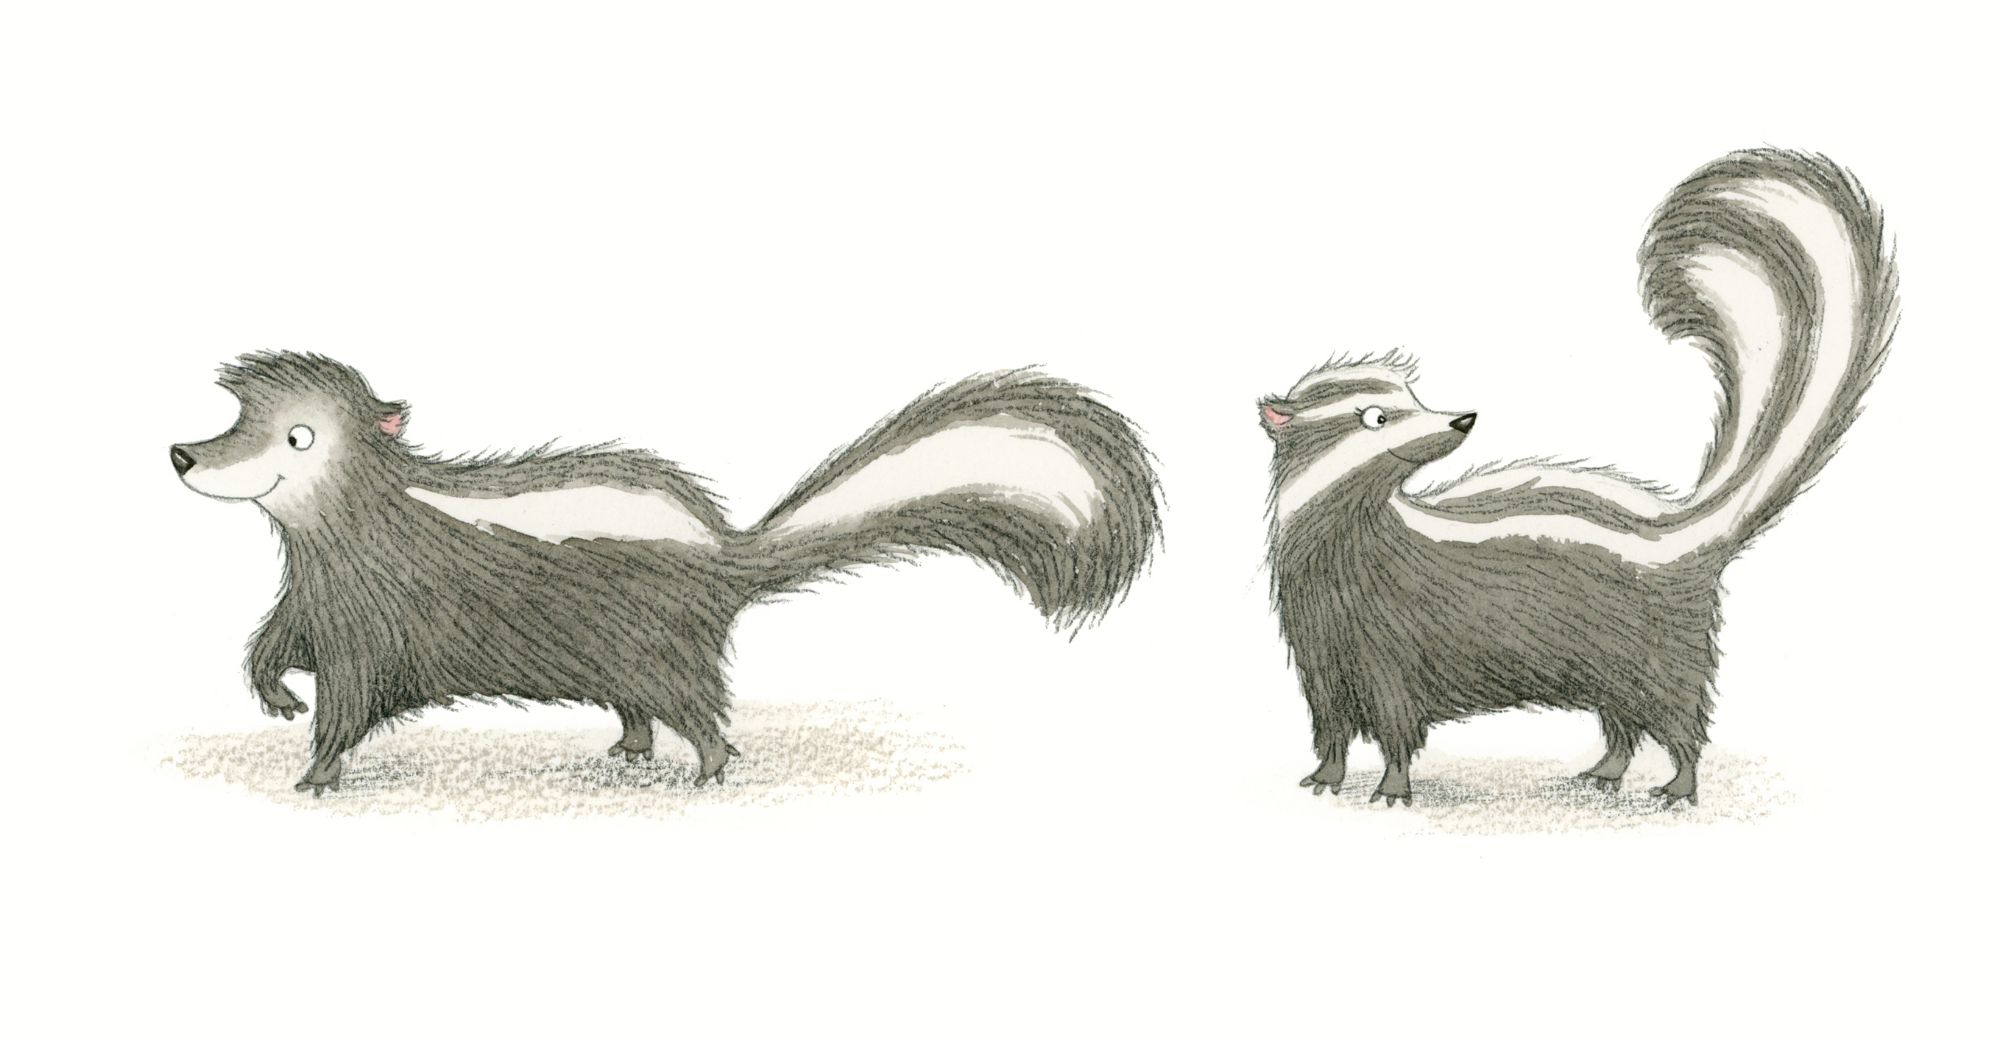 skunk illustration